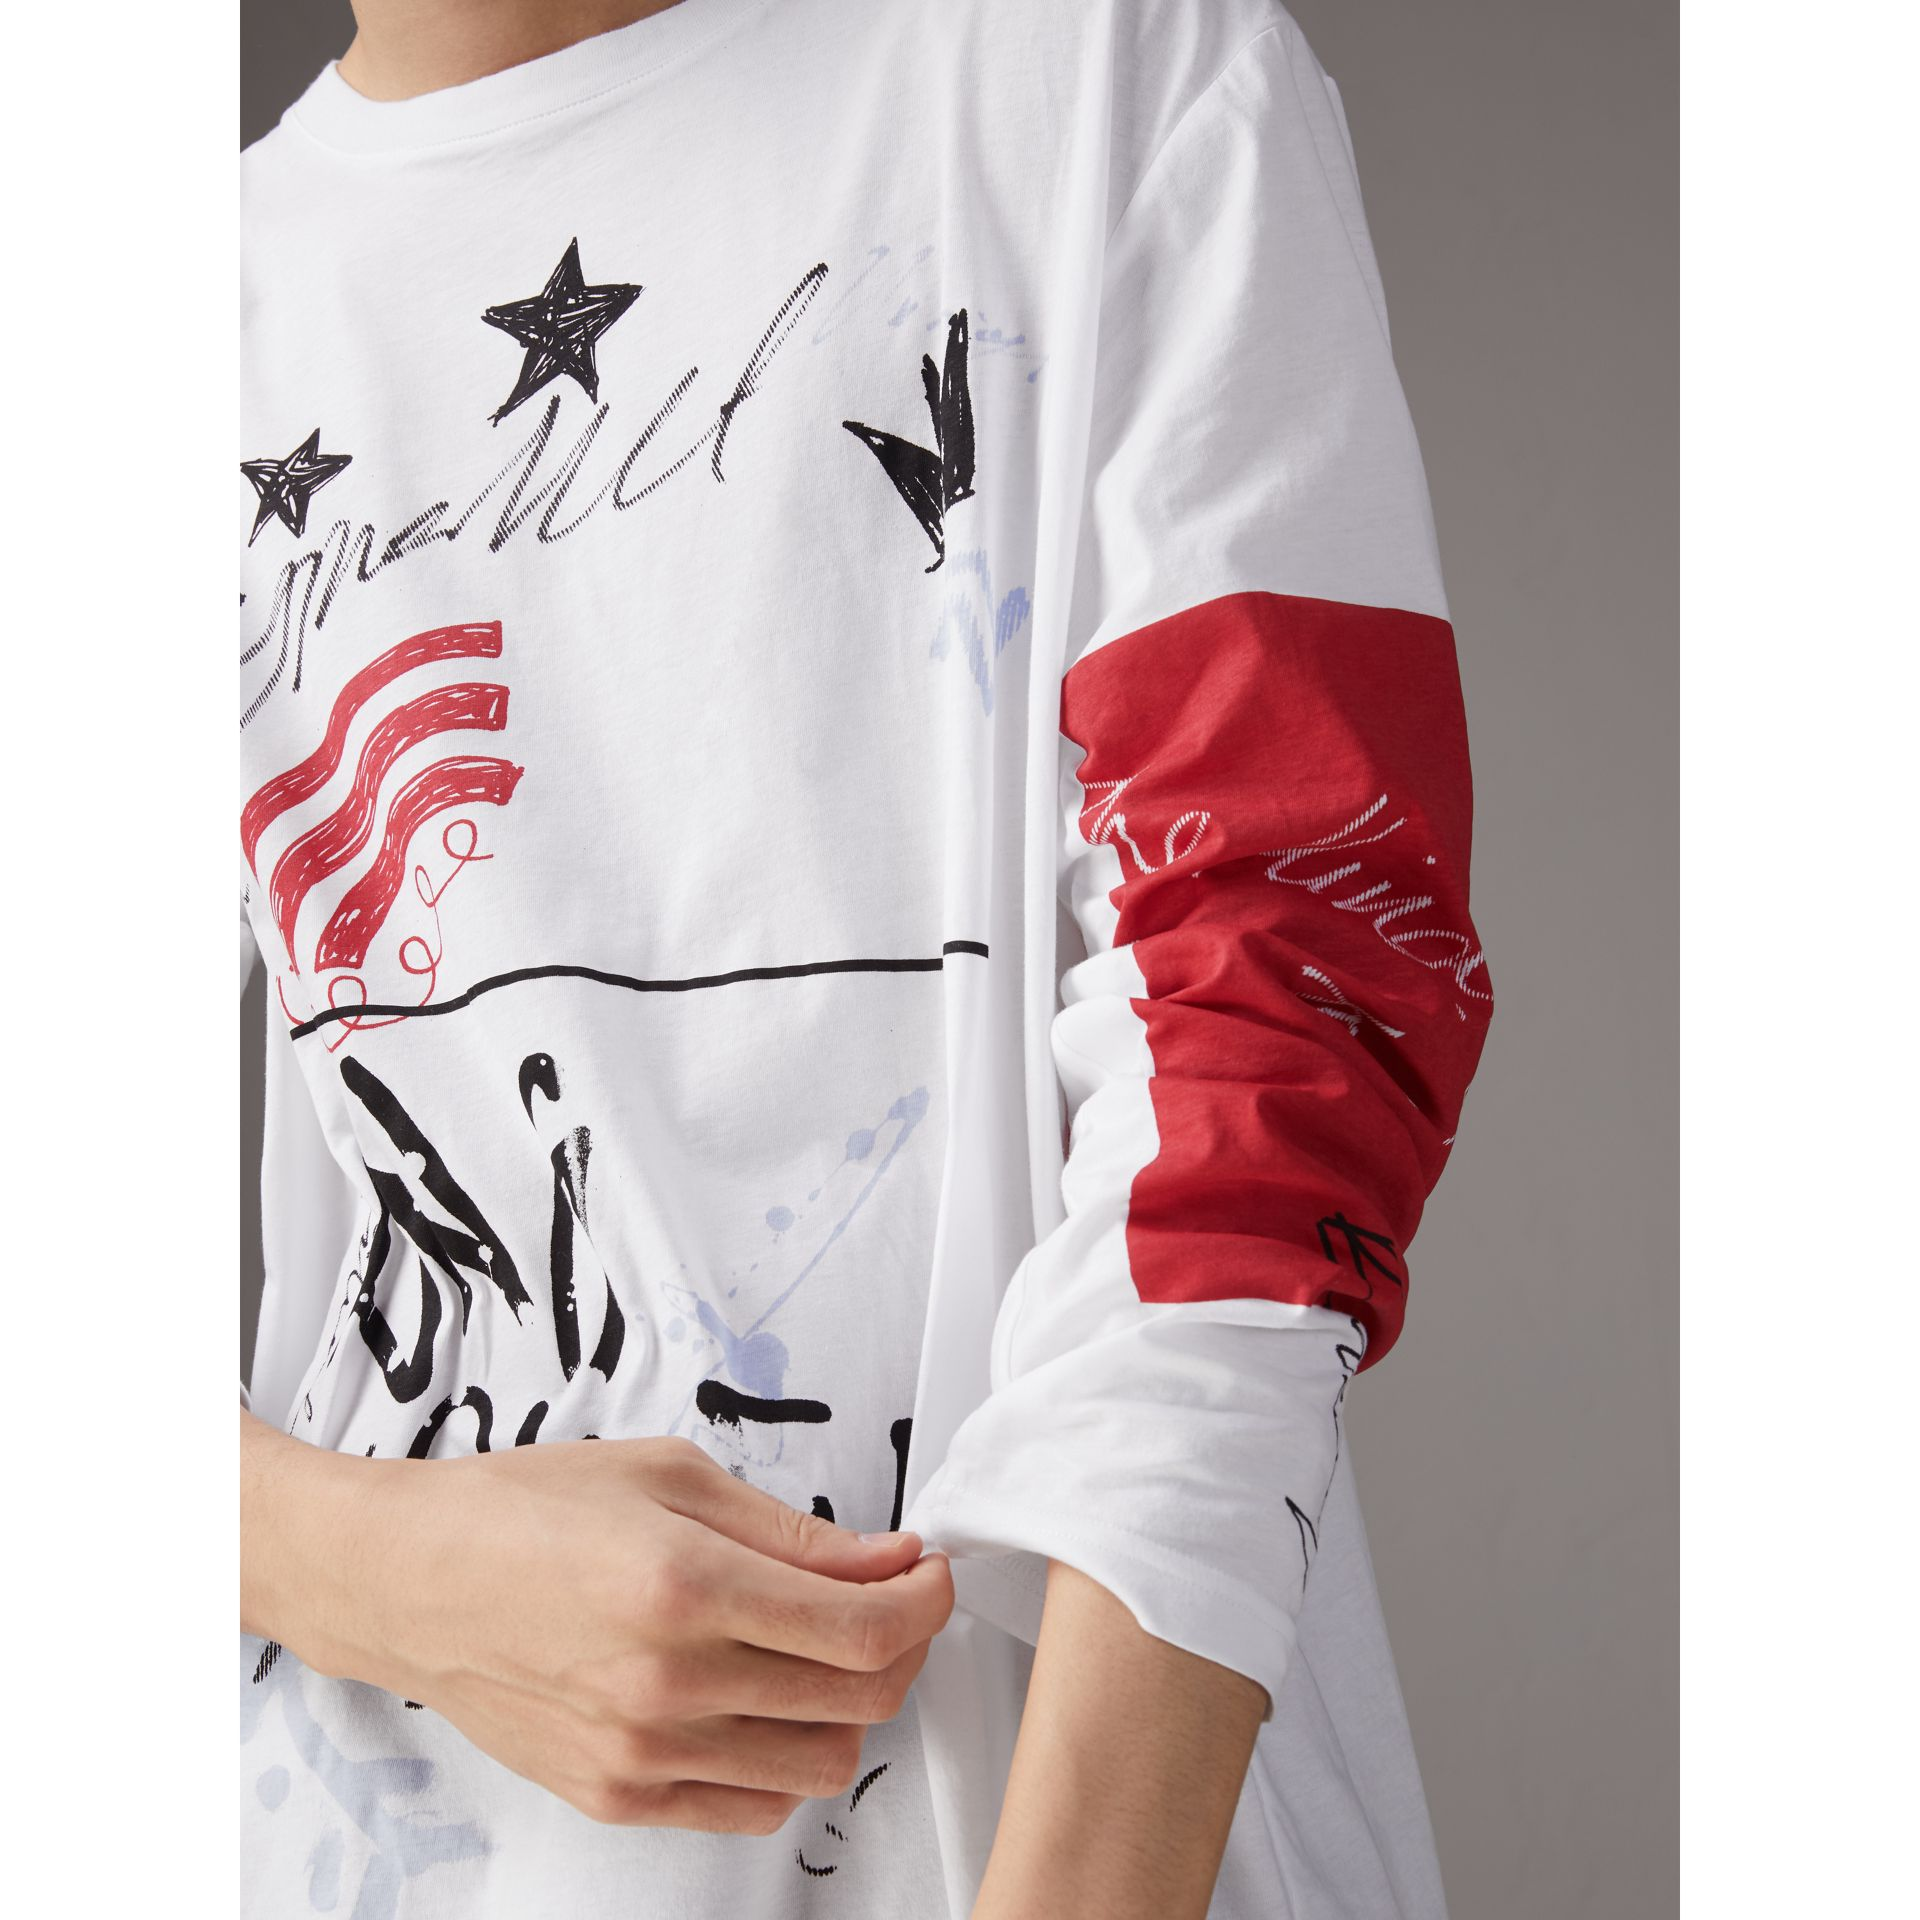 Burberry x Kris Wu Long-sleeve Printed Cotton Top in White - Men | Burberry - gallery image 1